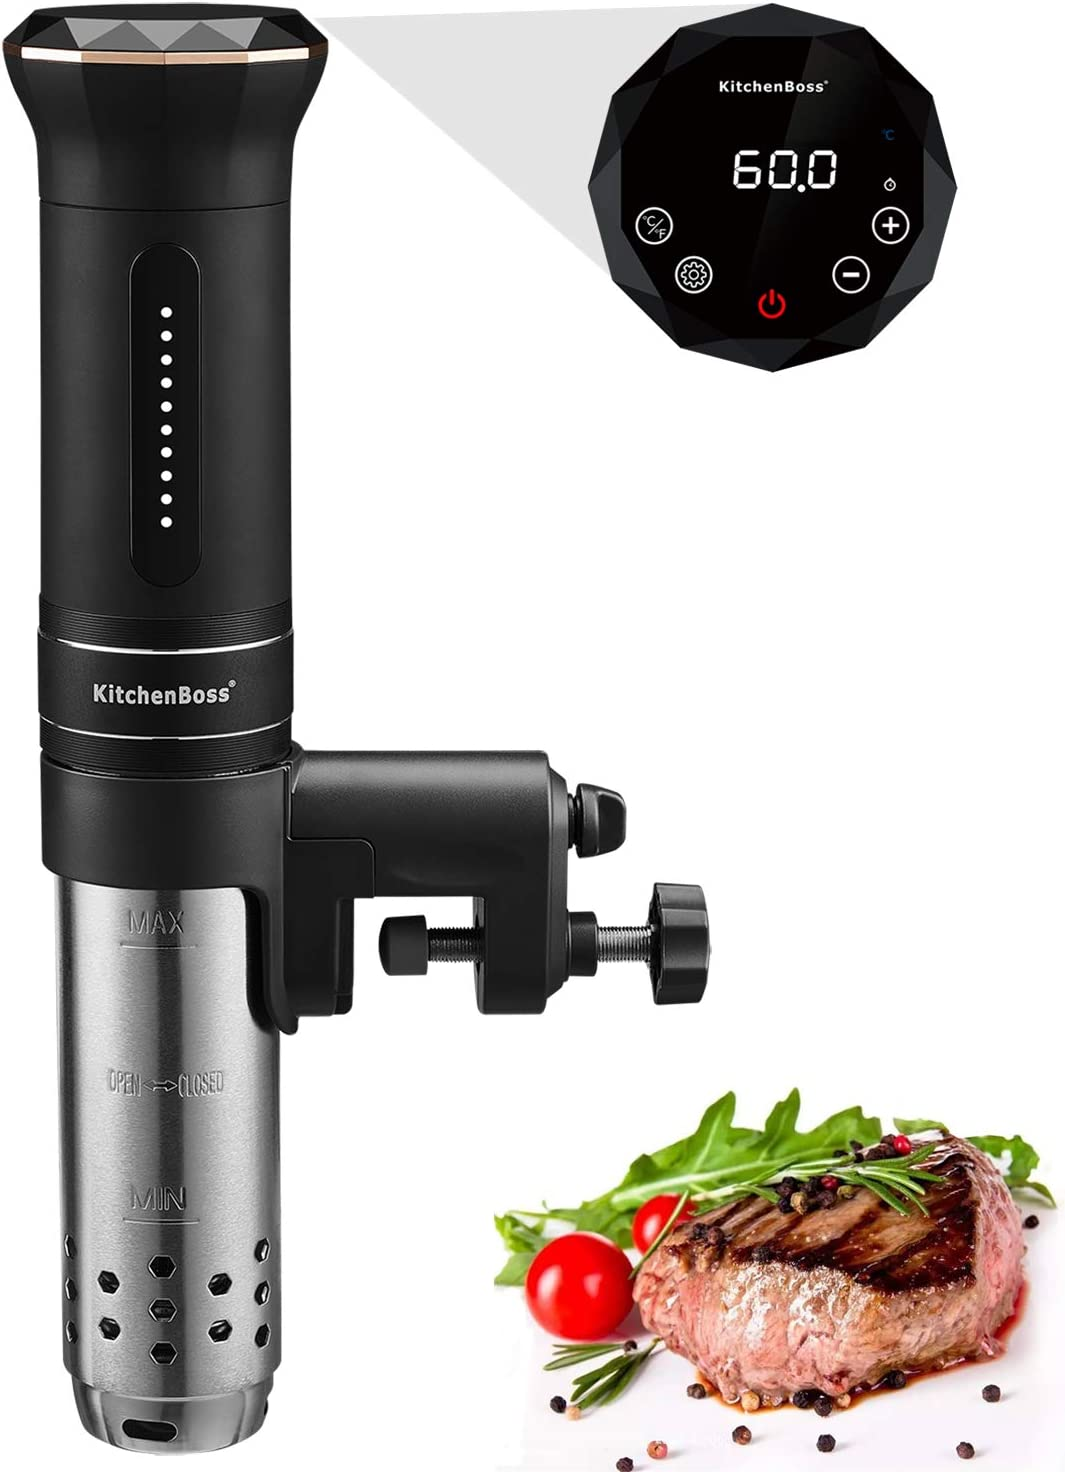 Sous Vide Cooker,1100 Watt IPX7 Waterproof,Sous Vide Machine, with Accurate Temperature Control Digital Display, Includes 10pcs Vacuum Sealer Bags,by KitchenBoss